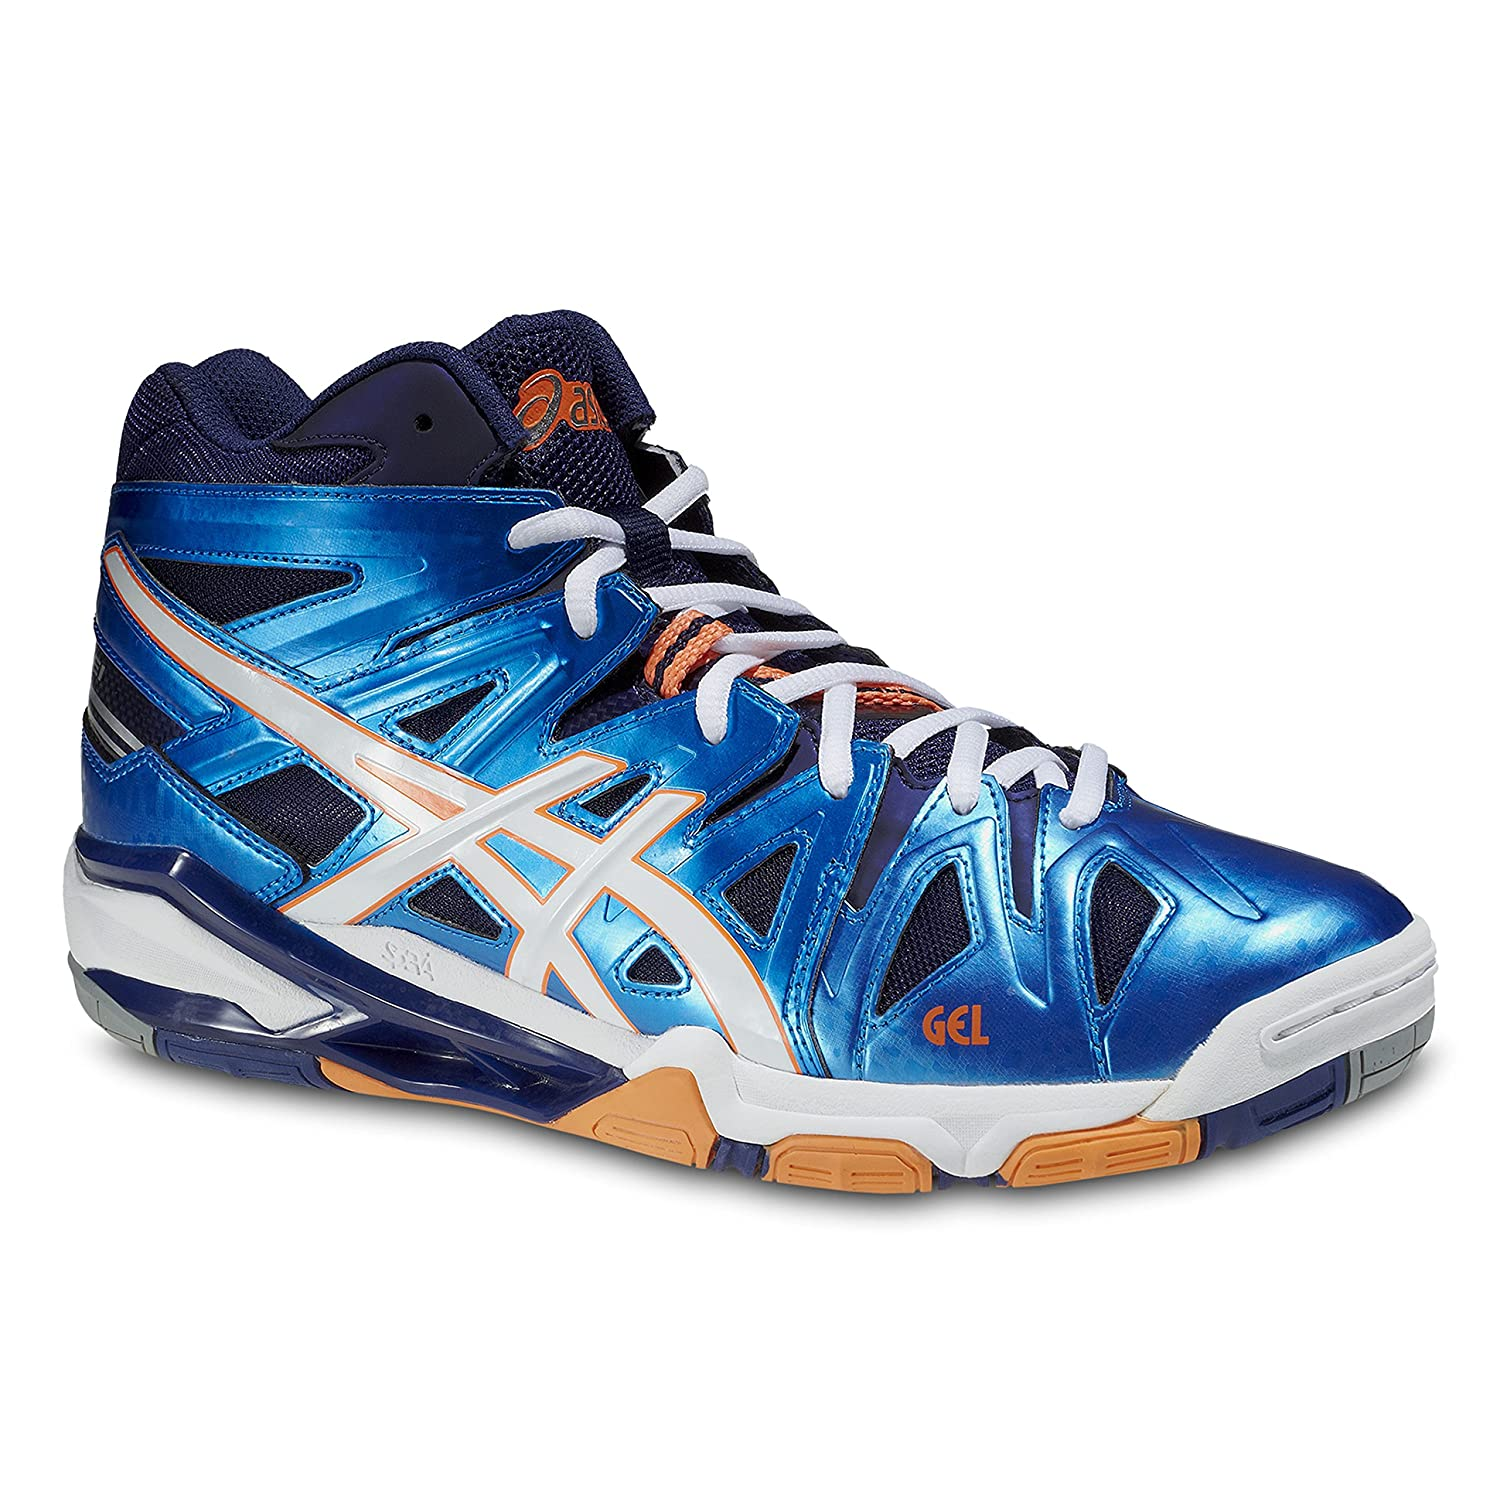 6097ffc5a1d90 Acquista asics gel sensei 4 - OFF75% sconti